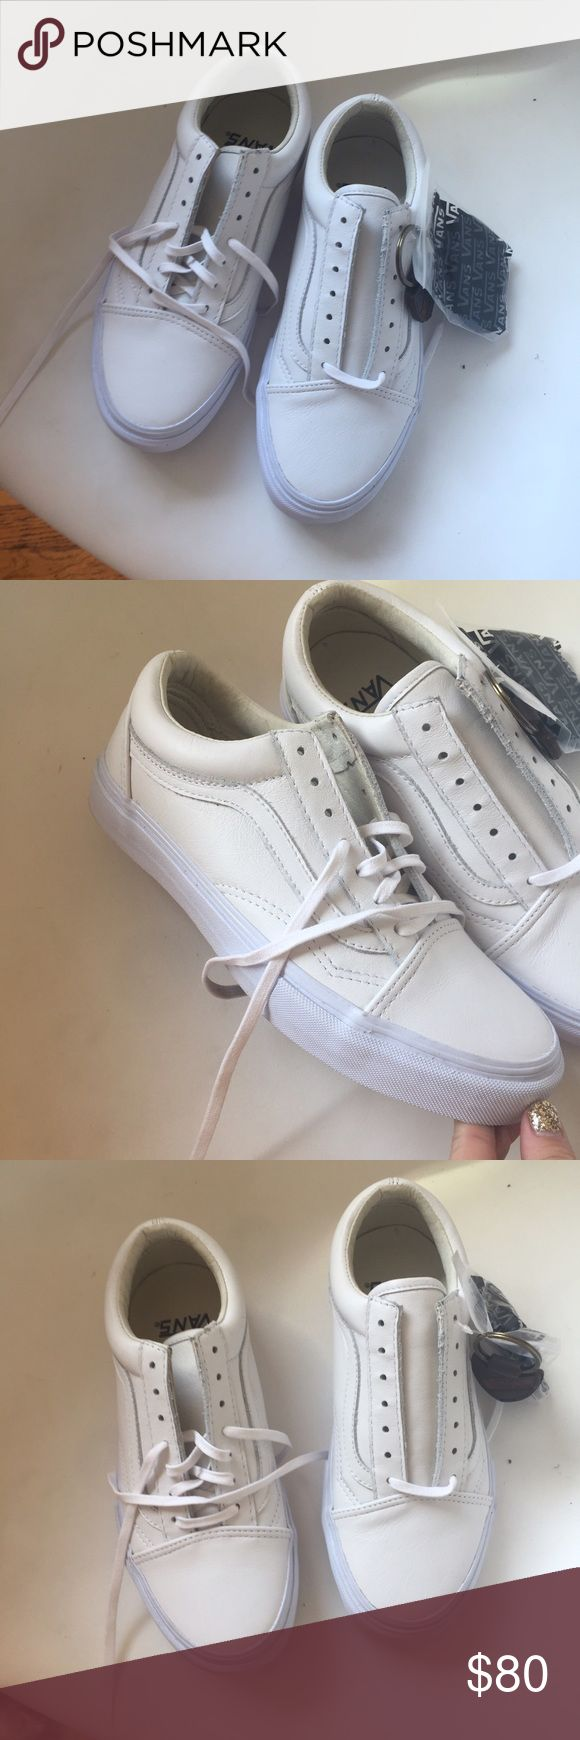 White Leather Vans - Woman's 7. Brand New White Leather Vans - Woman's 7. Brand New. Comes with black laces Vans Shoes Sneakers